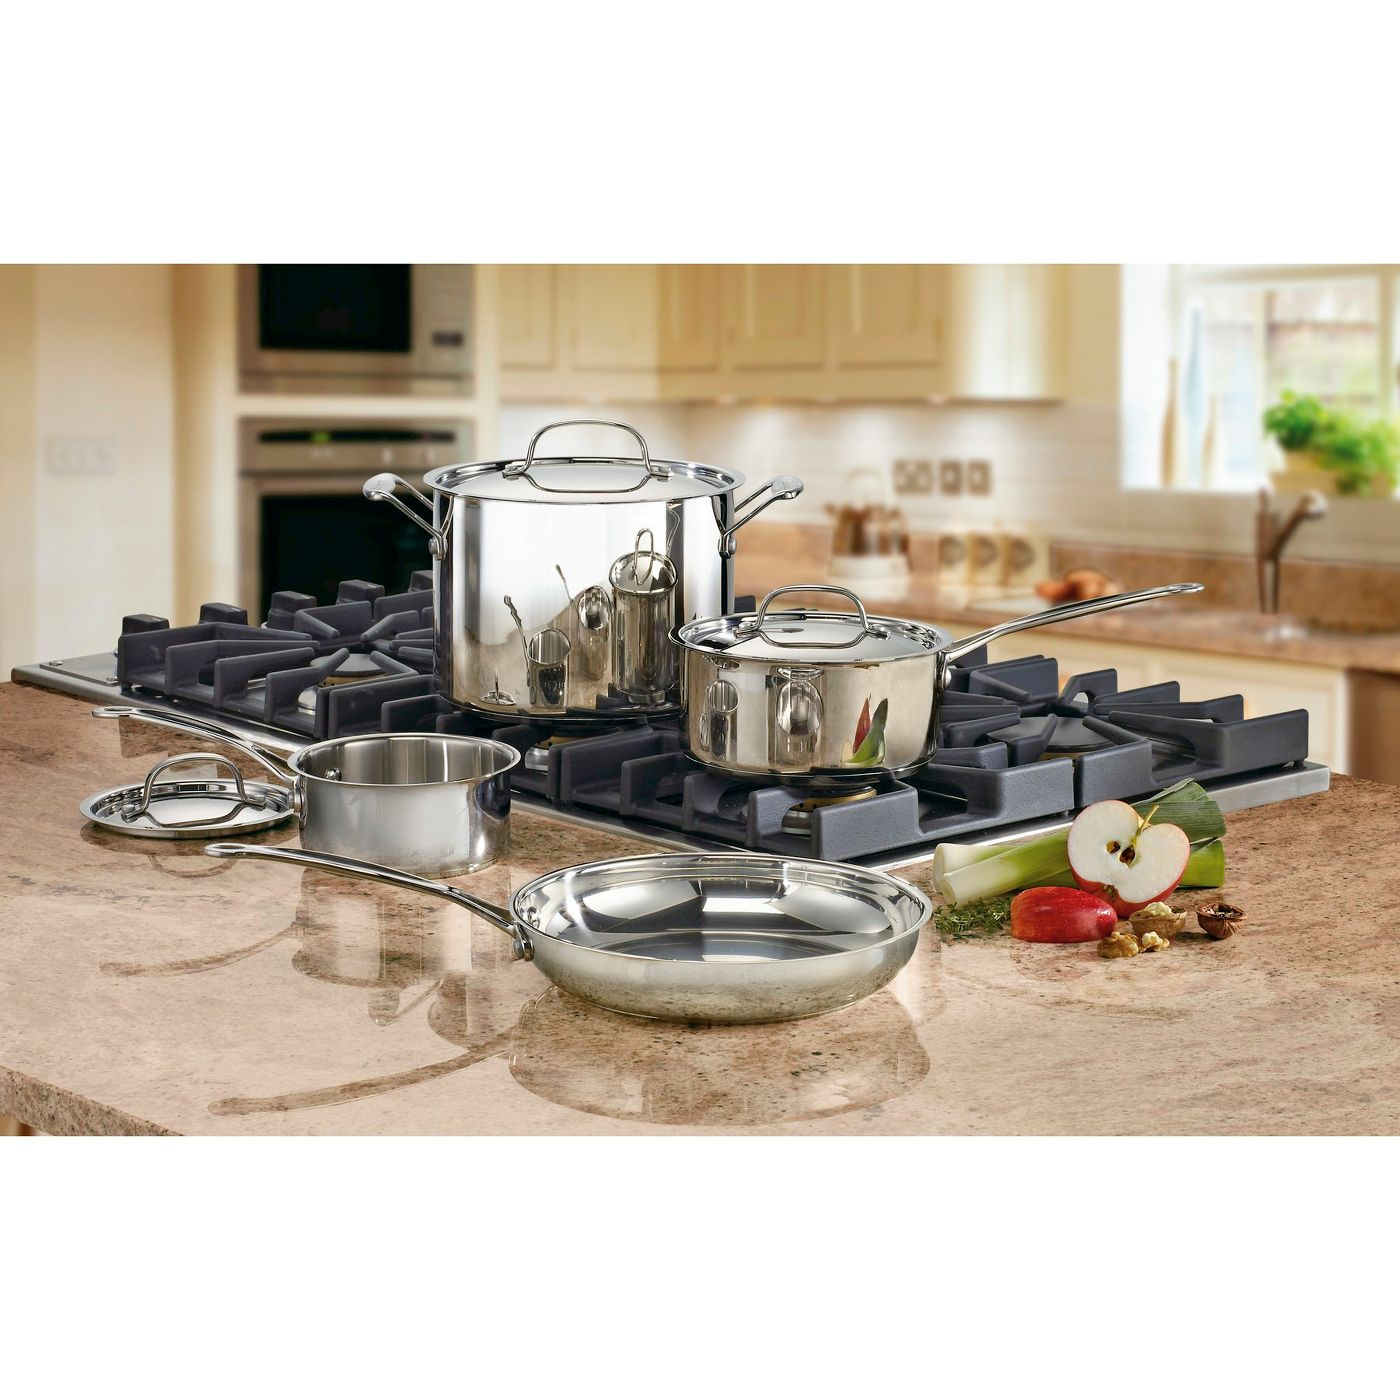 Cuisinart® Chef's Classic Stainless Steel Set 7pc Set -  77-7 - image 1 of 2